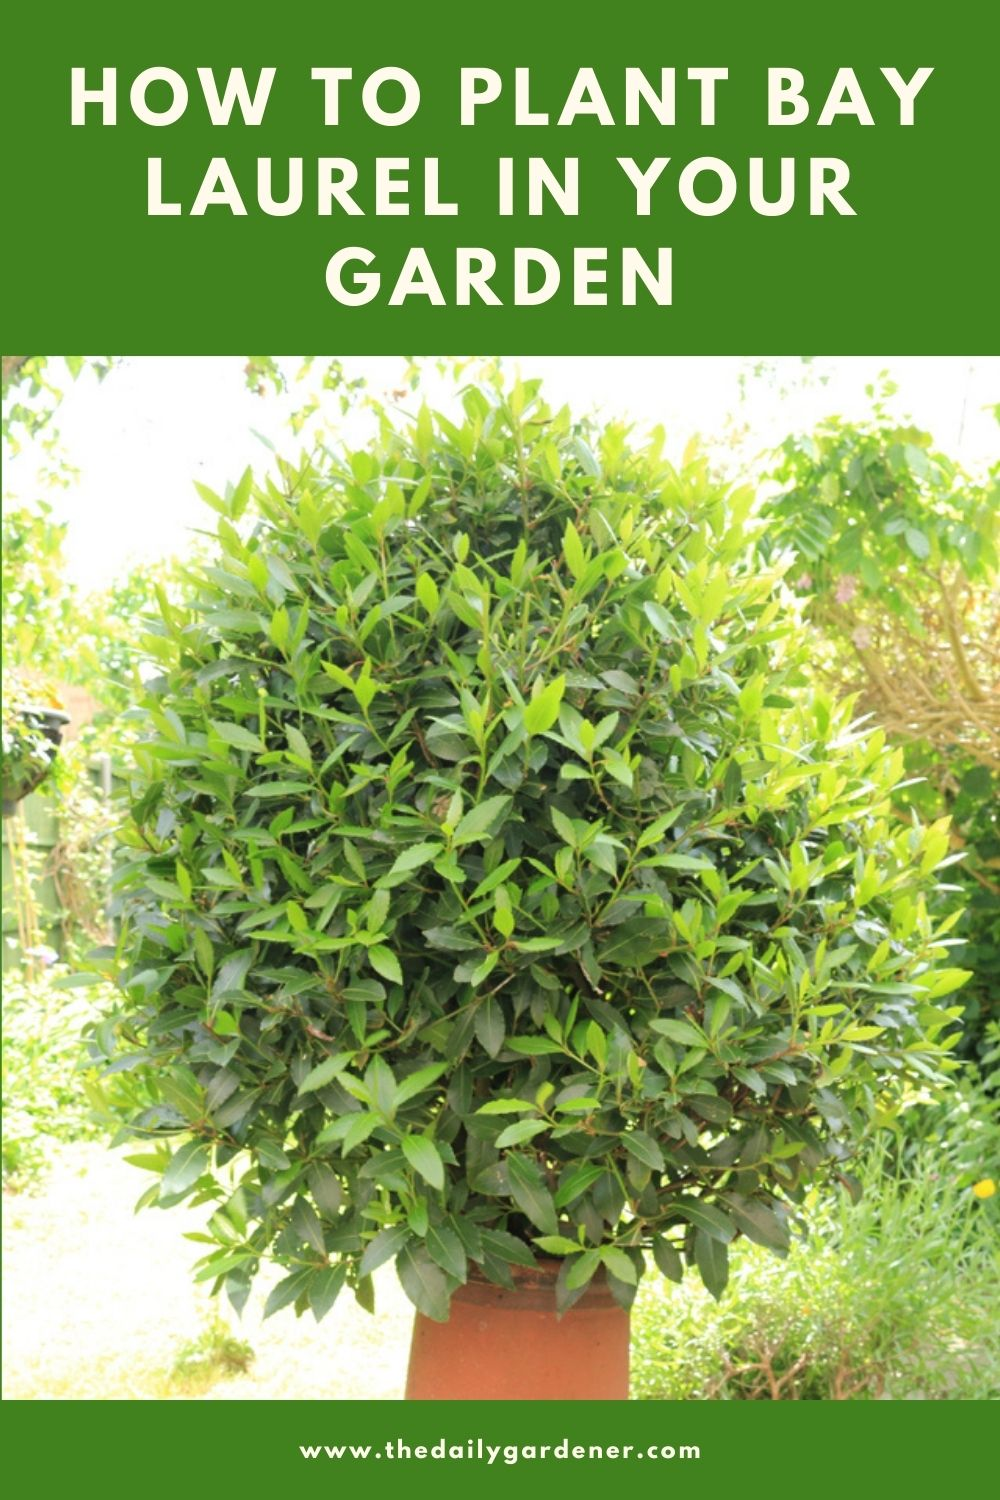 How to Plant Bay Laurel in Your Garden (Tricks to Care!) 1